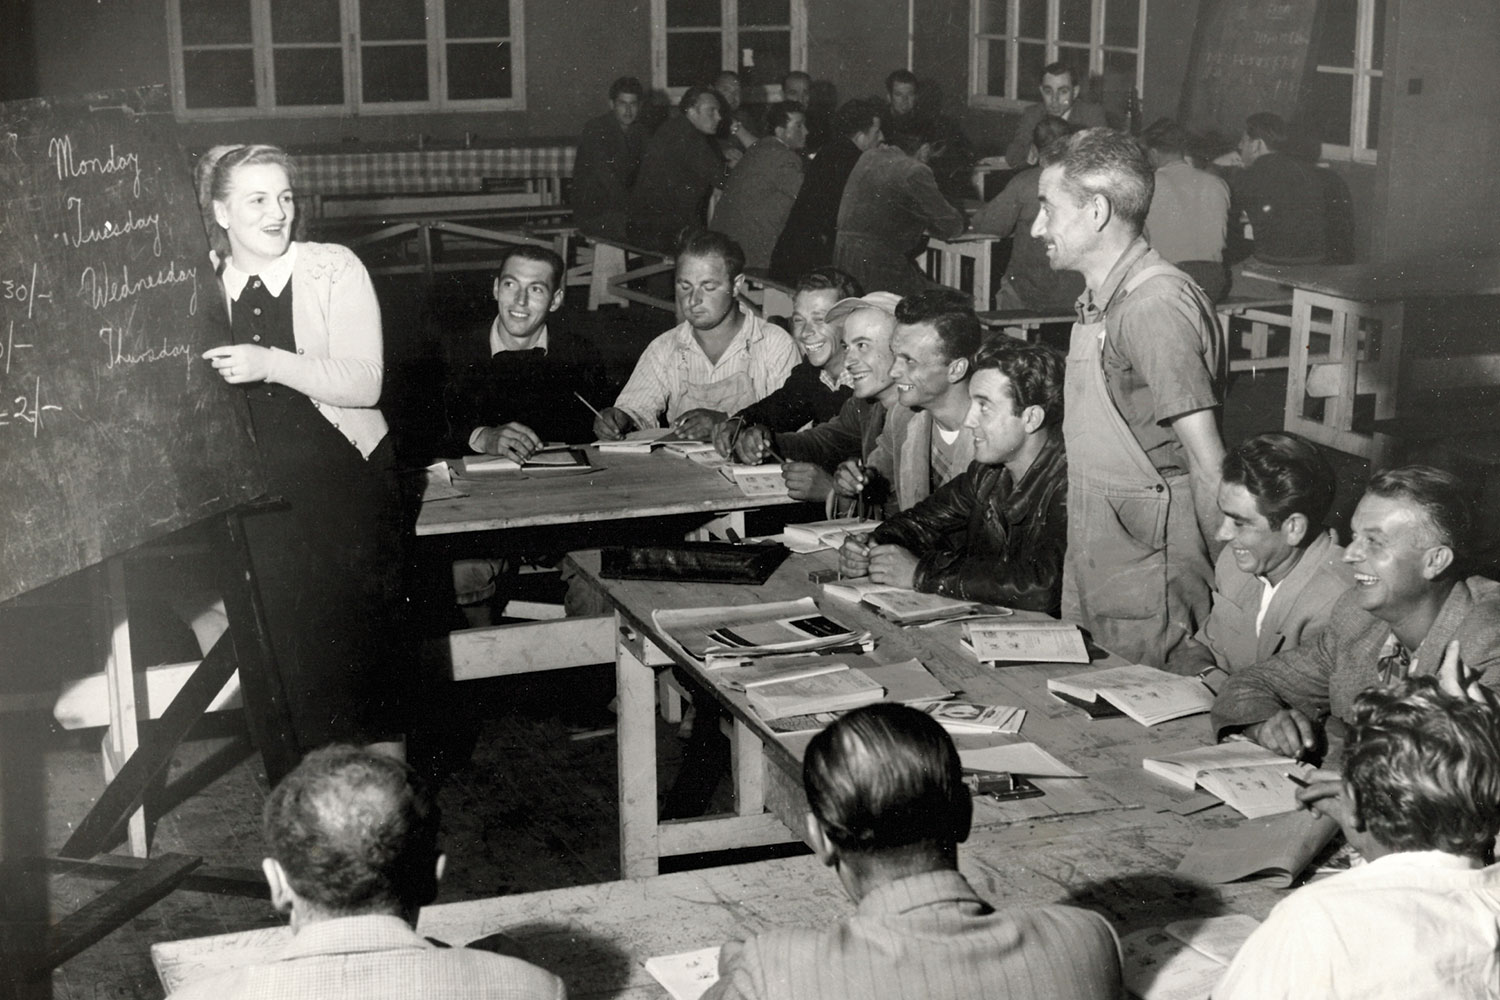 English class in progress for migrant scheme workers in Cooma township. (Image: National Archives of Australia/Fairfax Media)